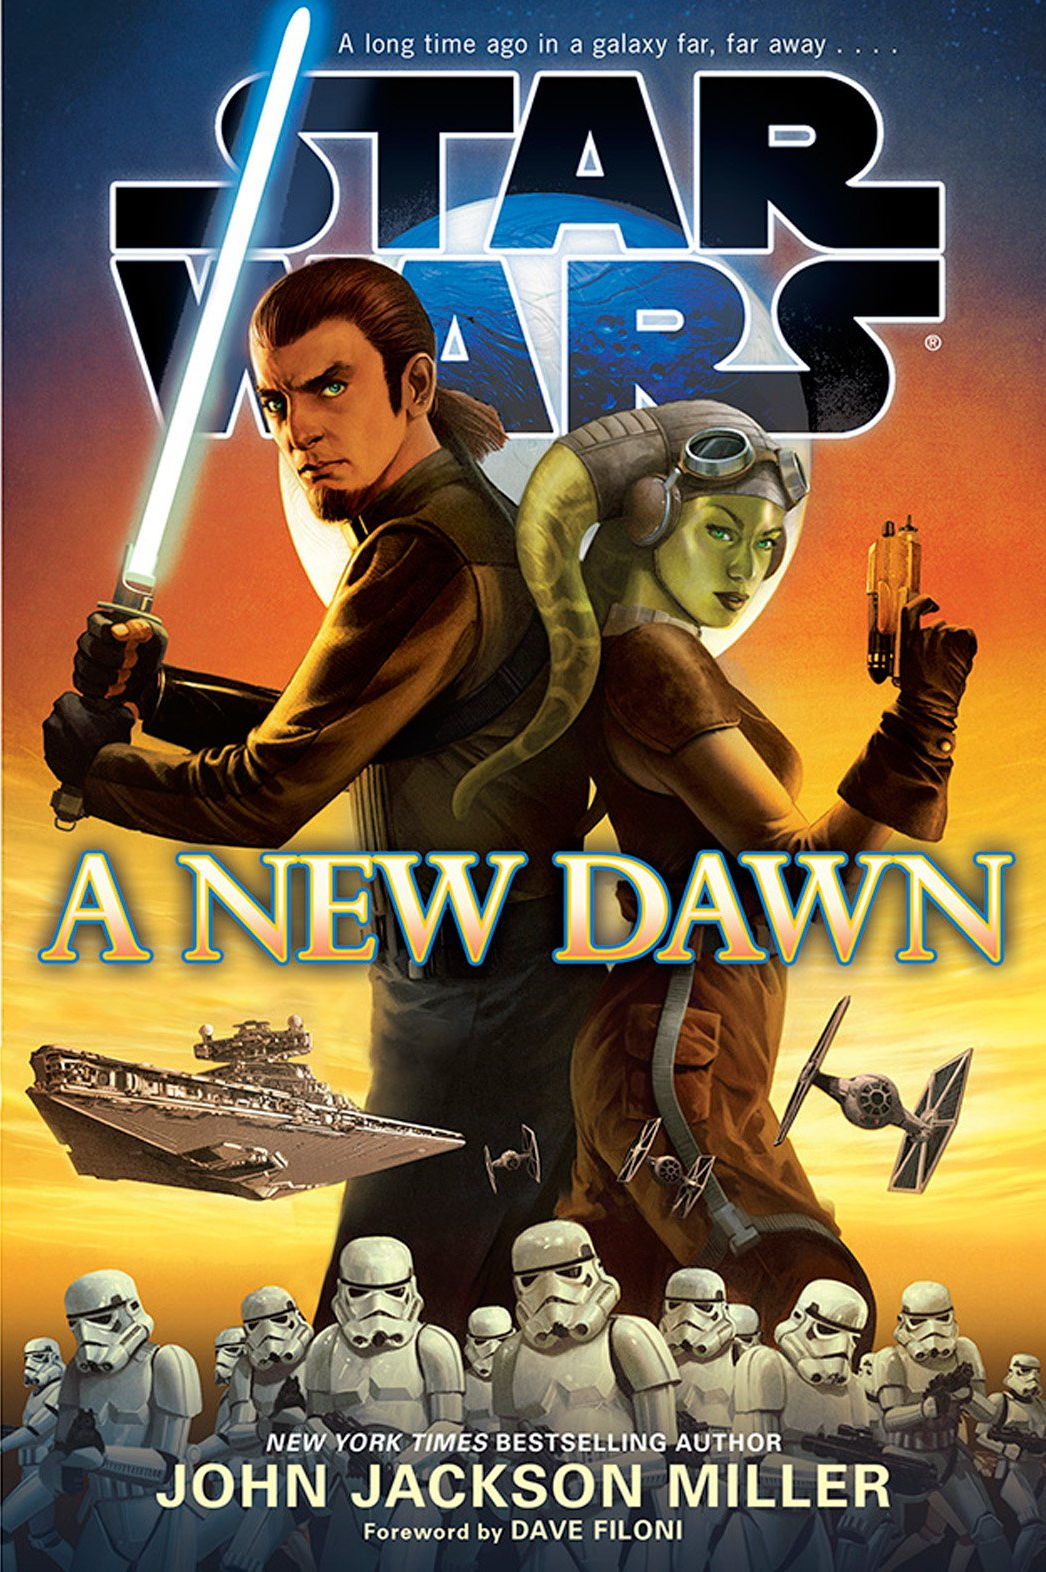 Image result for A New Dawn Star wars